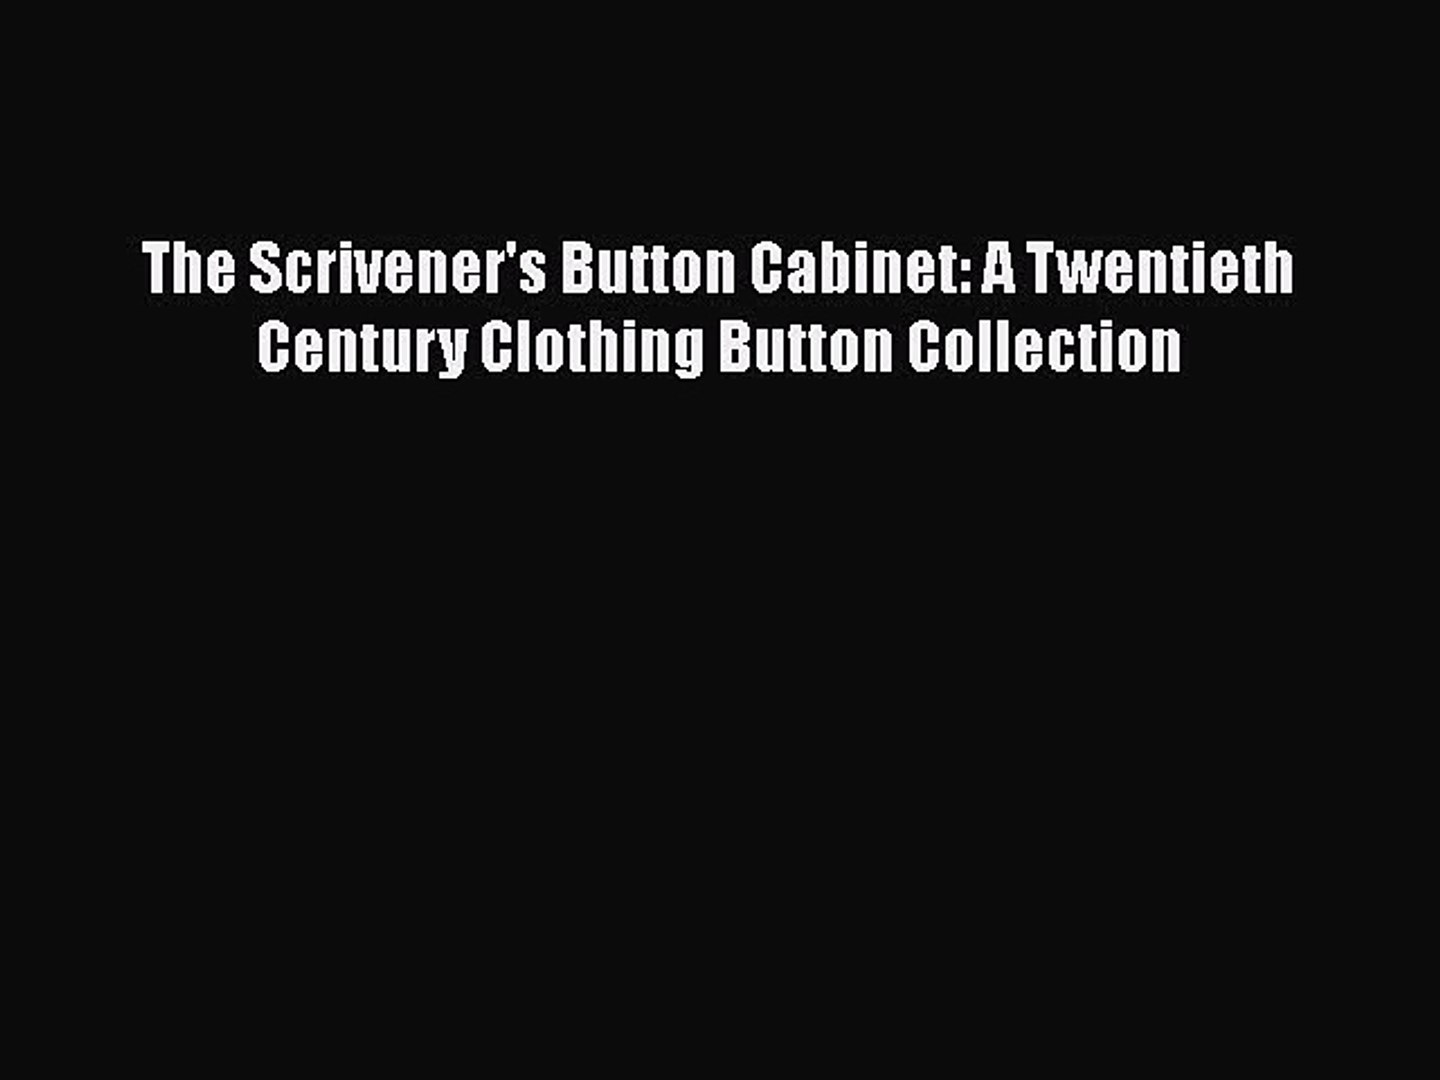 The Scrivener's Button Cabinet: A Twentieth Century Clothing Button Collection Read Online